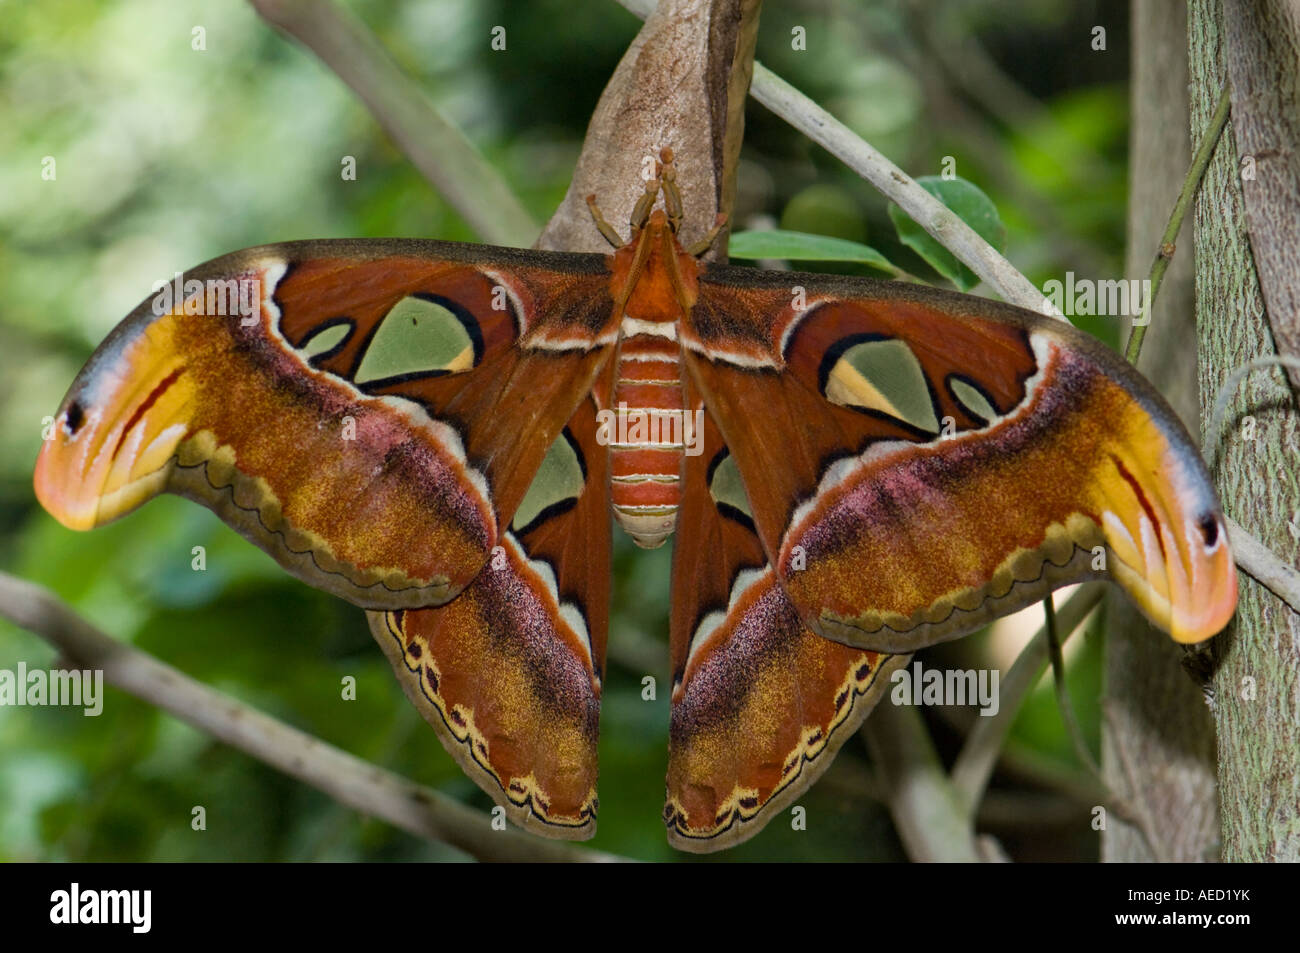 Largest moth in the world - photo#7